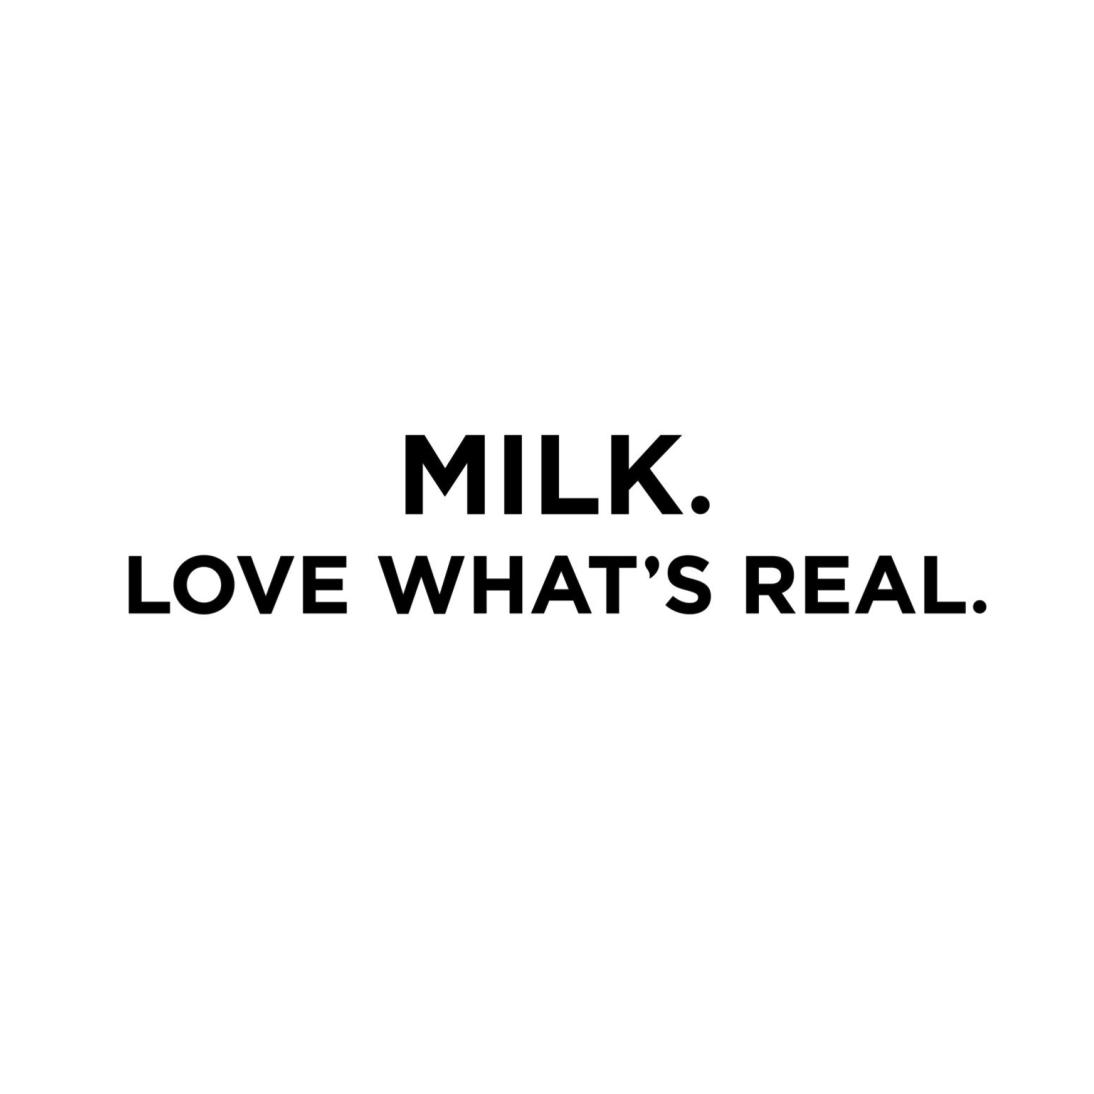 Love What's Real - A Real Milk For Every Moment